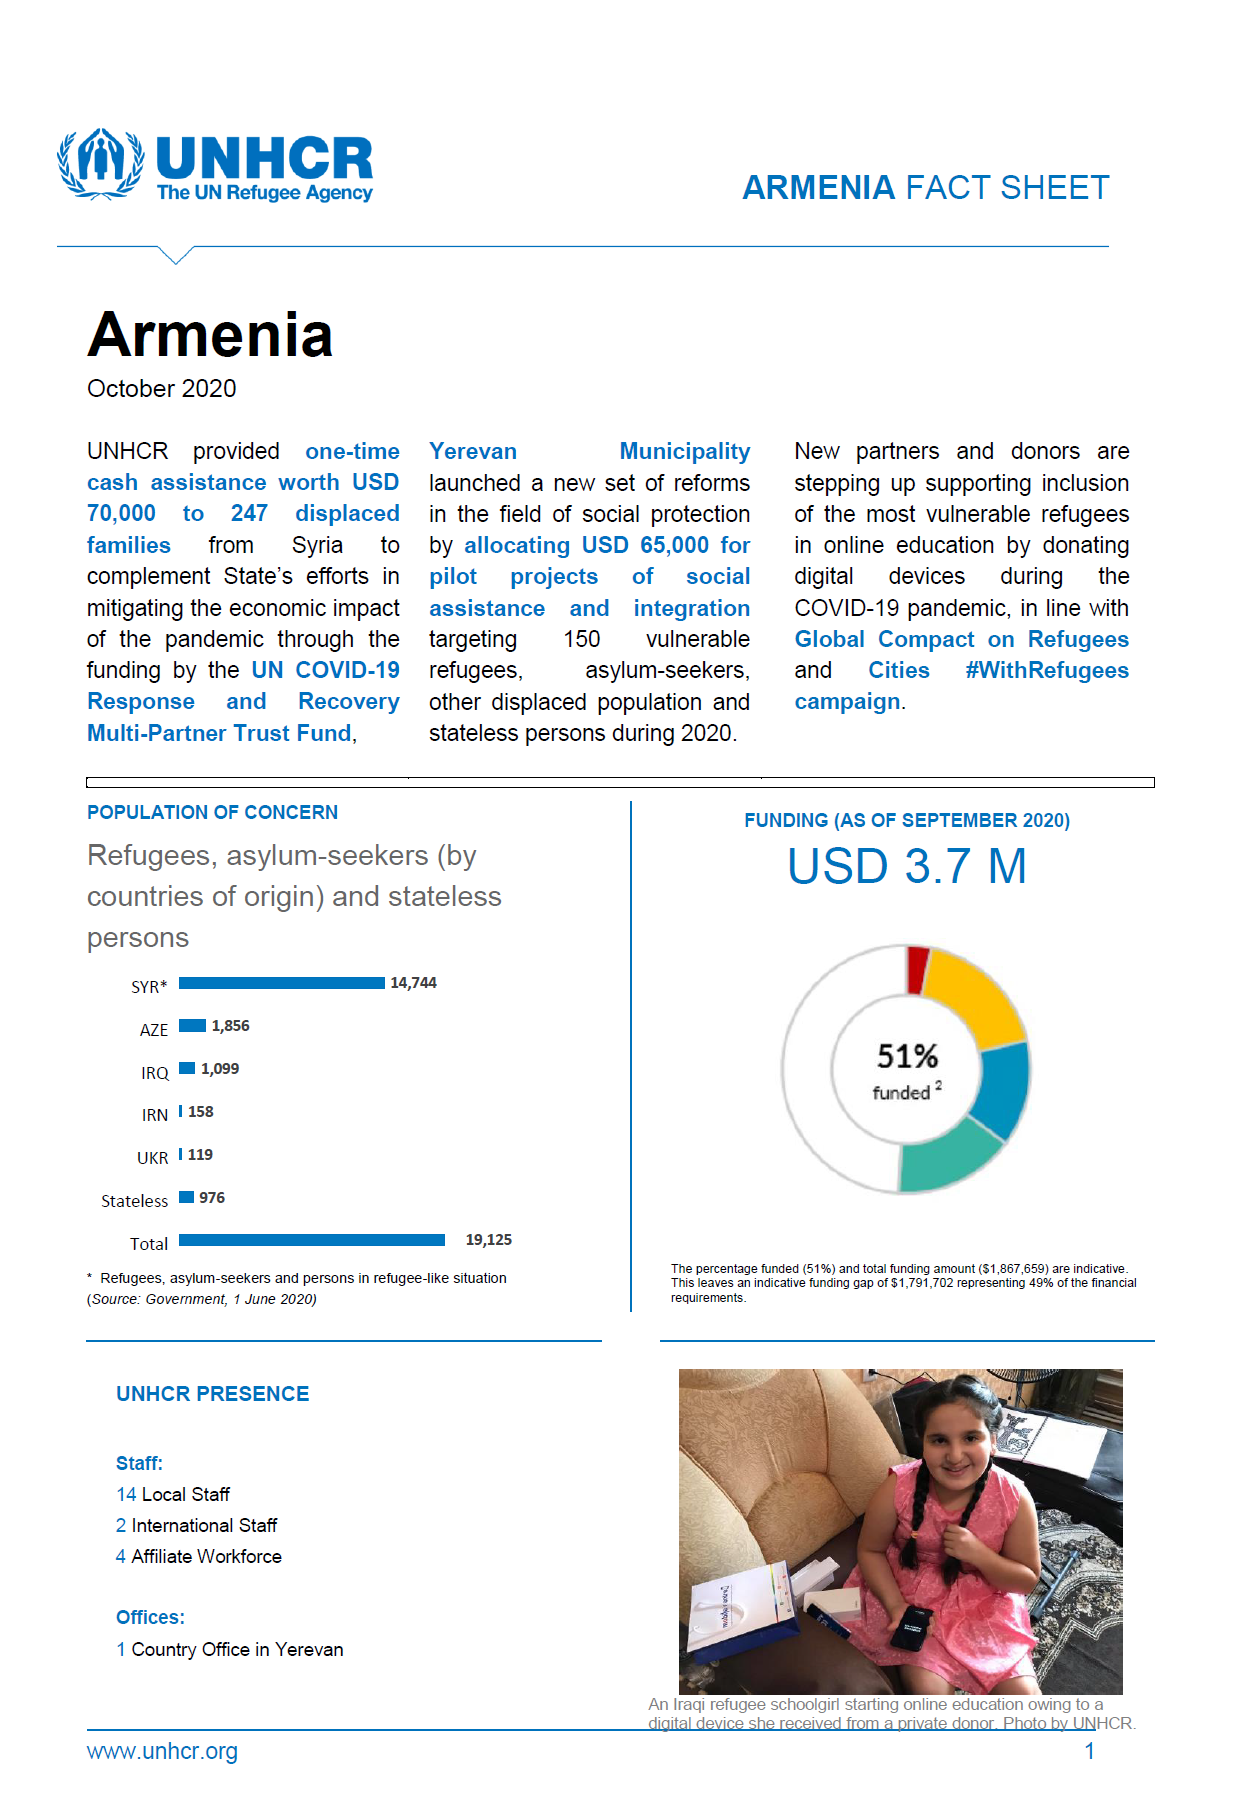 UNHCR Fact Sheet's cover page for October 2020